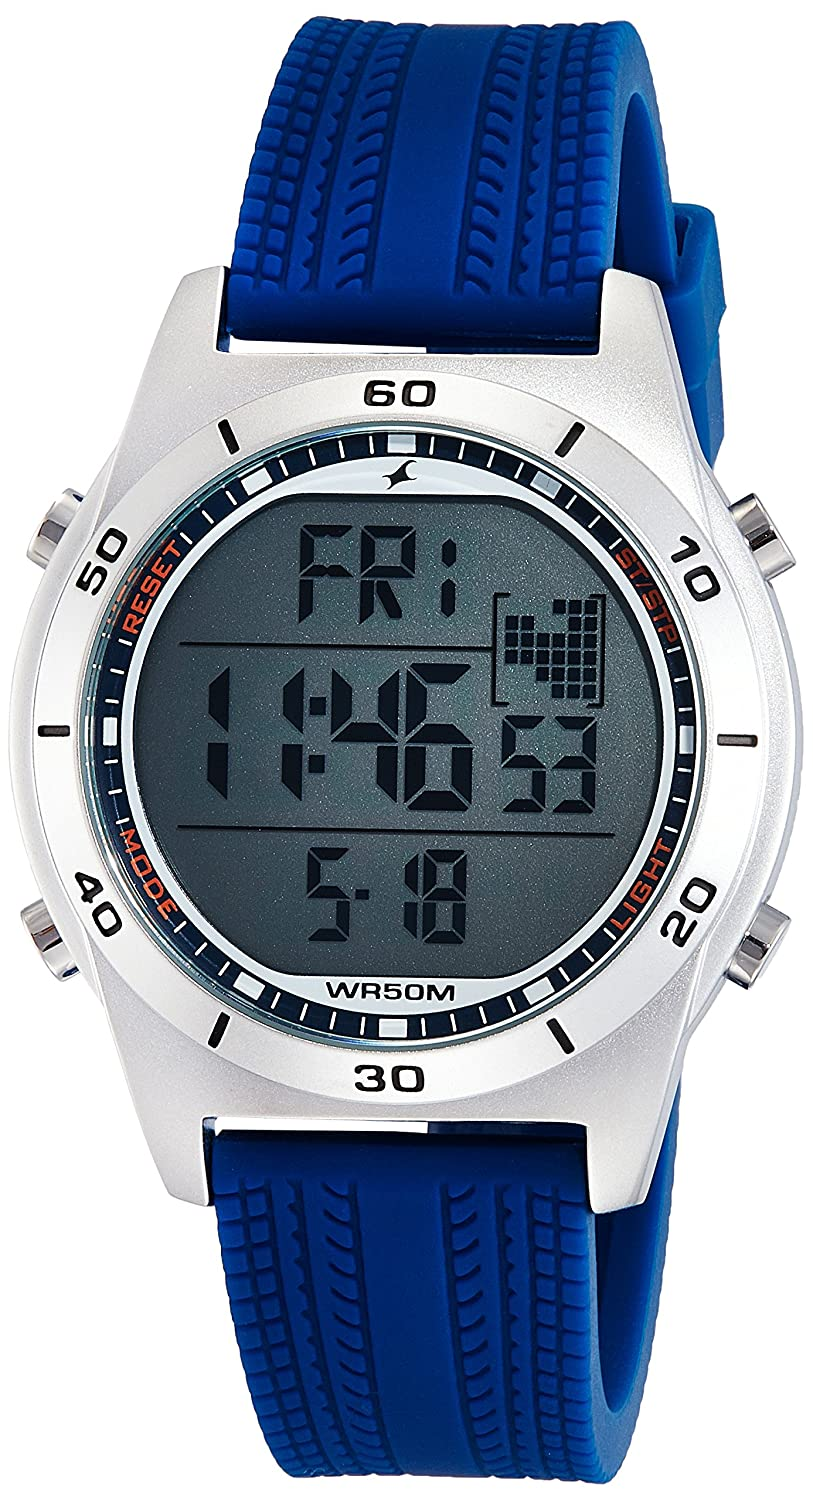 Fastrack Best Digital Watches under 2000 that are Worth Buying in India